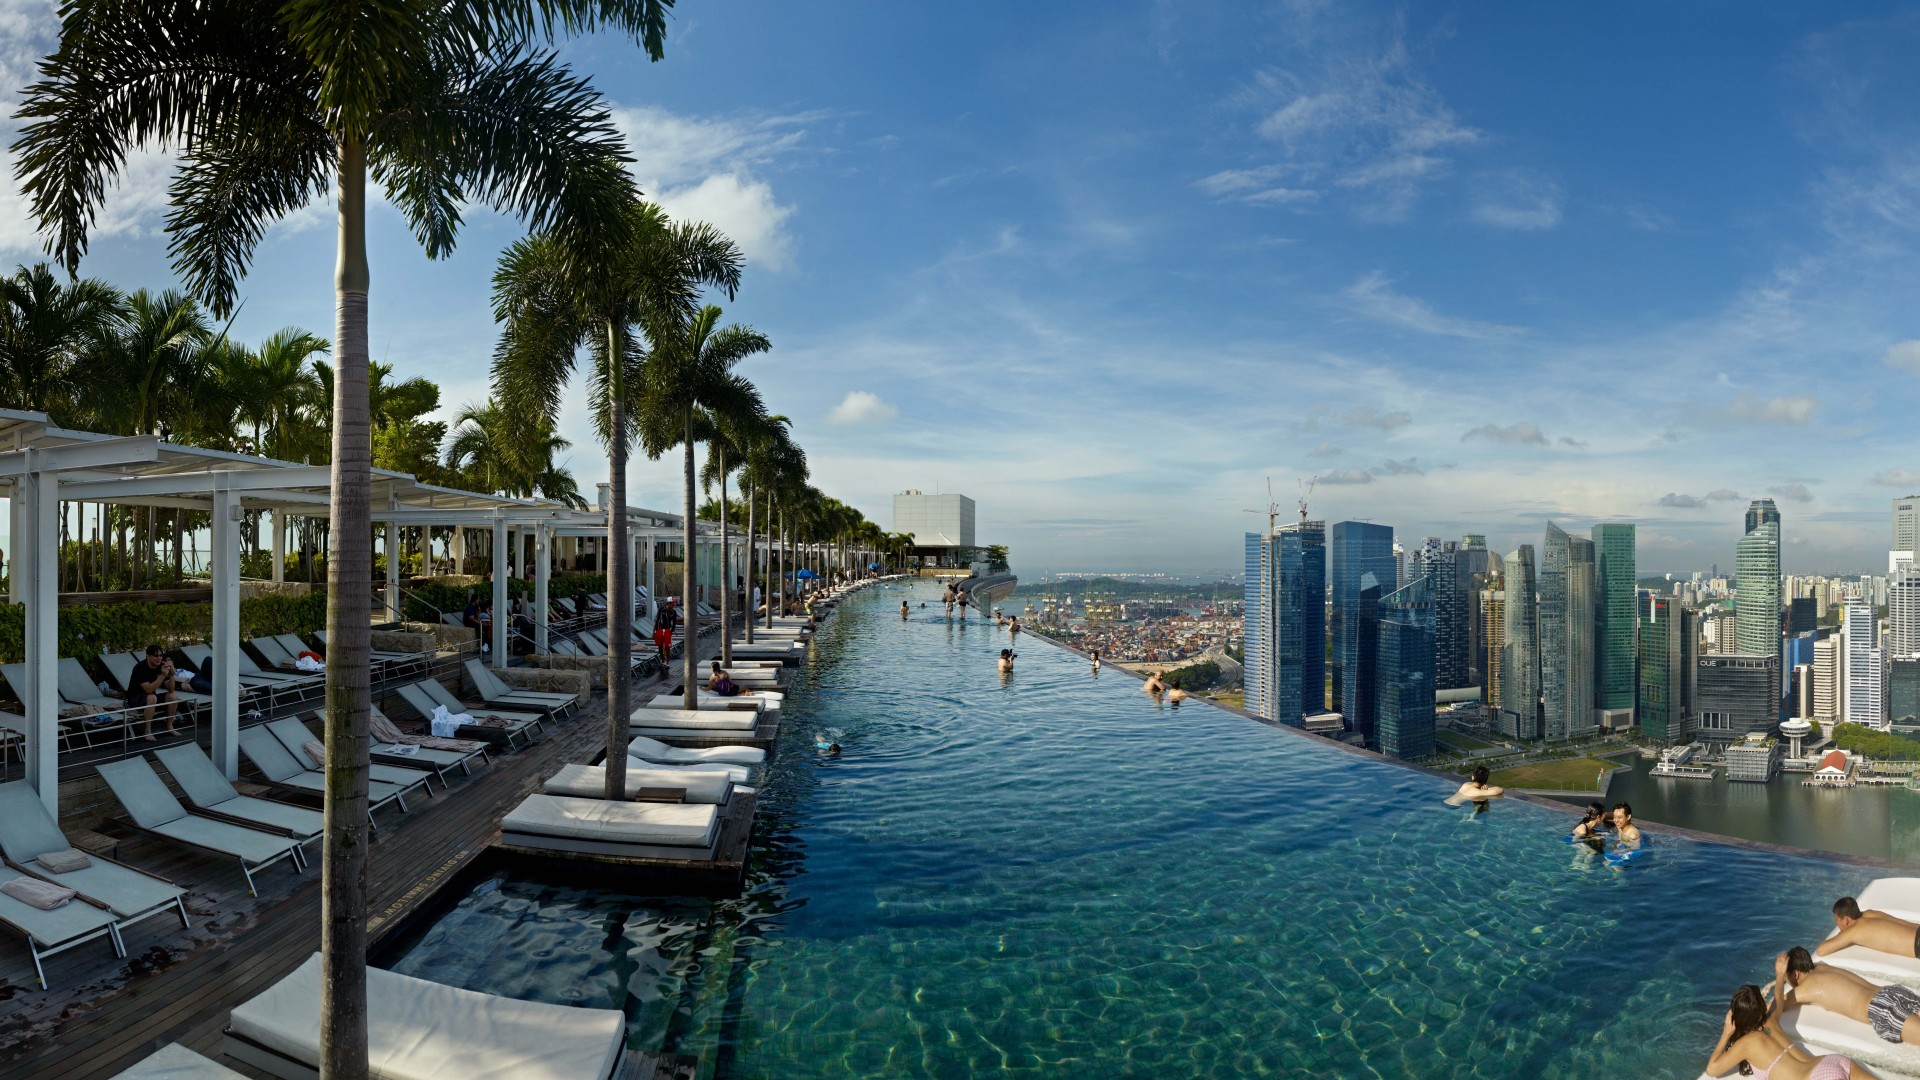 Wallpaper marina bay sands infinity pool pool hotel travel booking casino singapore - Singapore marina bay sands infinity pool ...